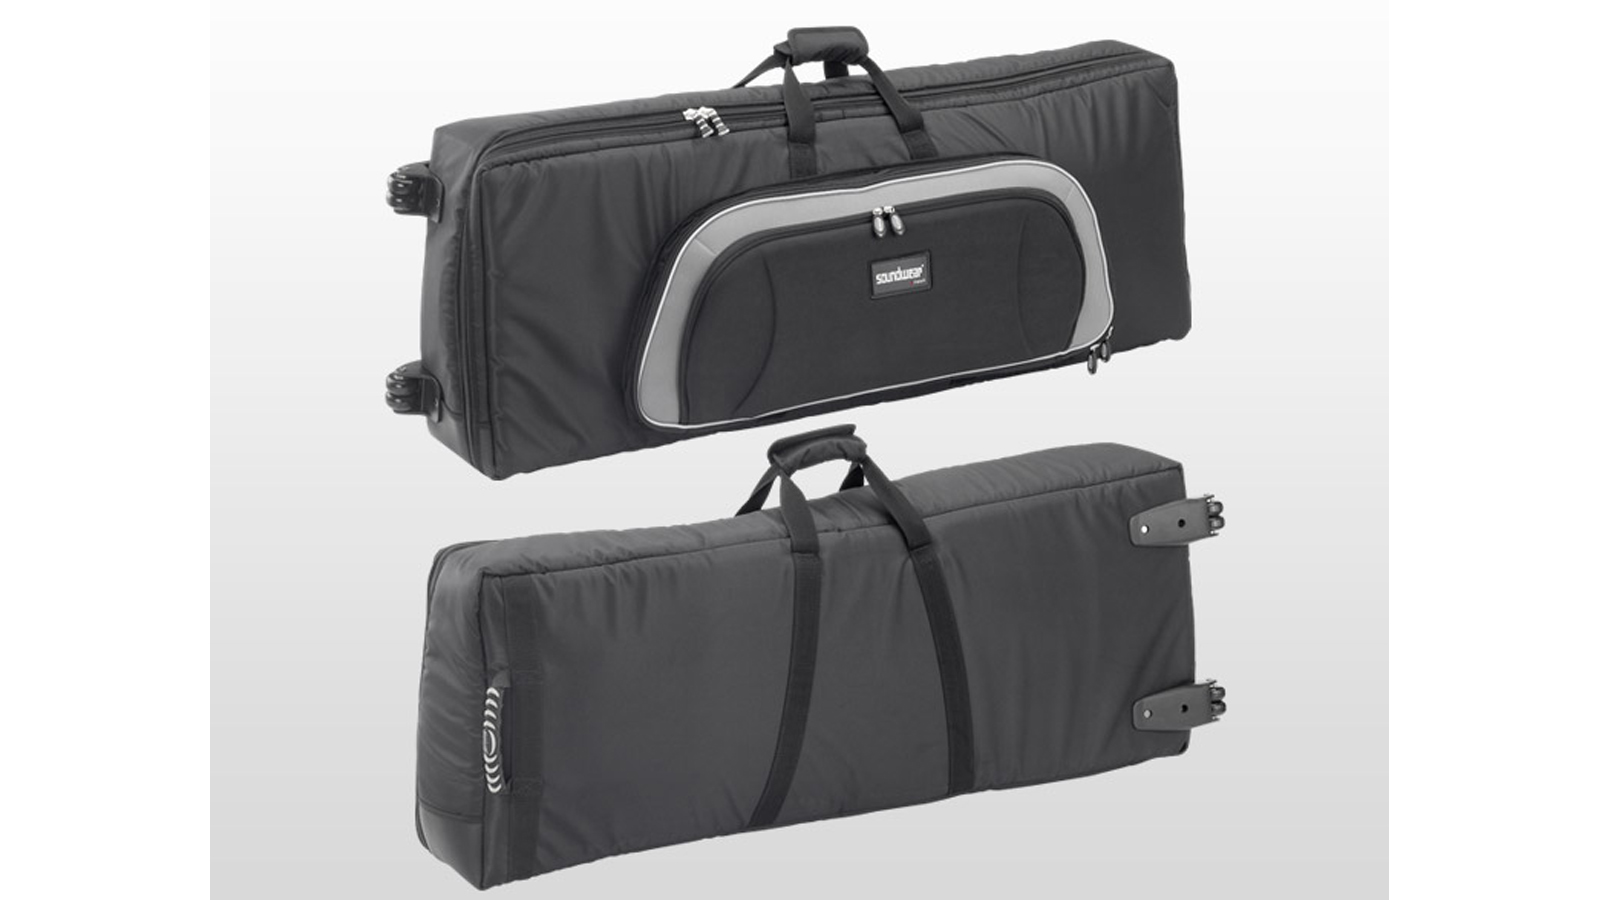 Soundwear Keyboard Bag Professional 127 x 42 x 16 cm